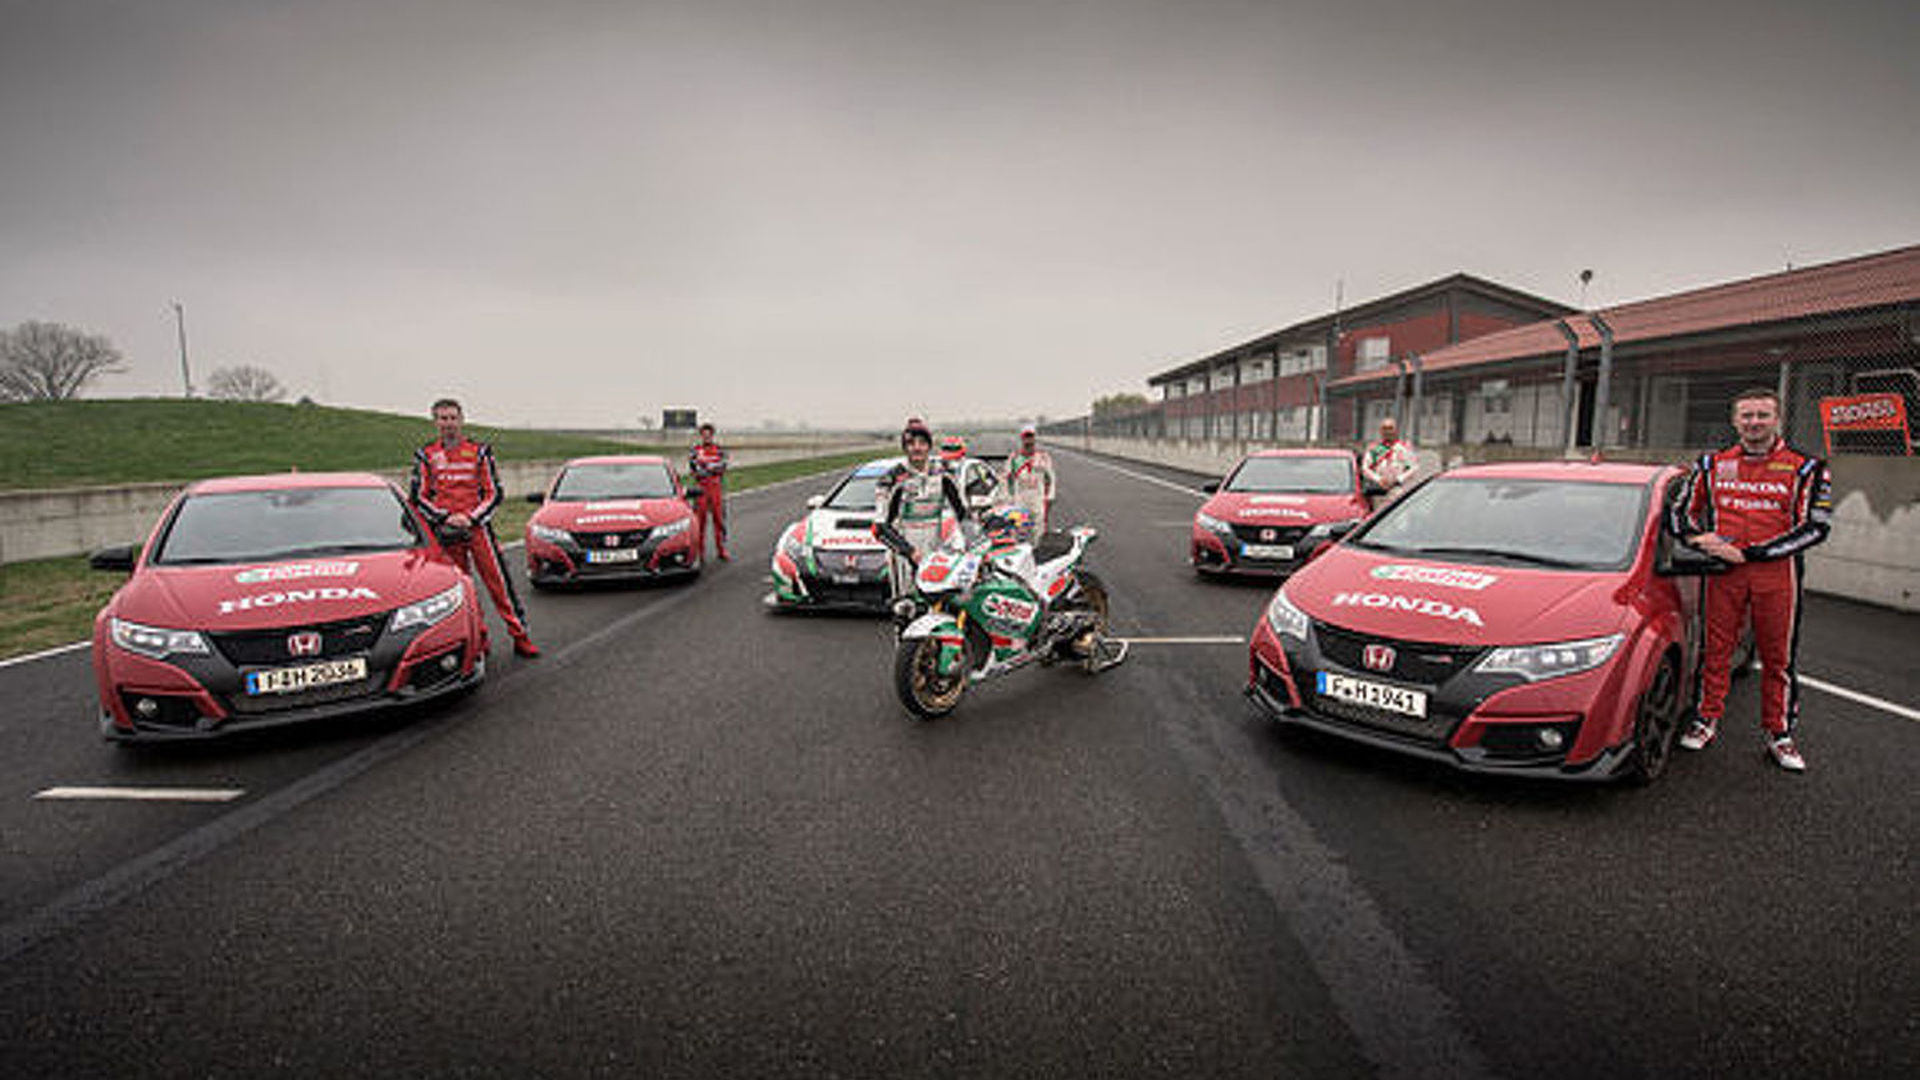 Honda pits a MotoGP Motorcycle against the Civic Type R [video]